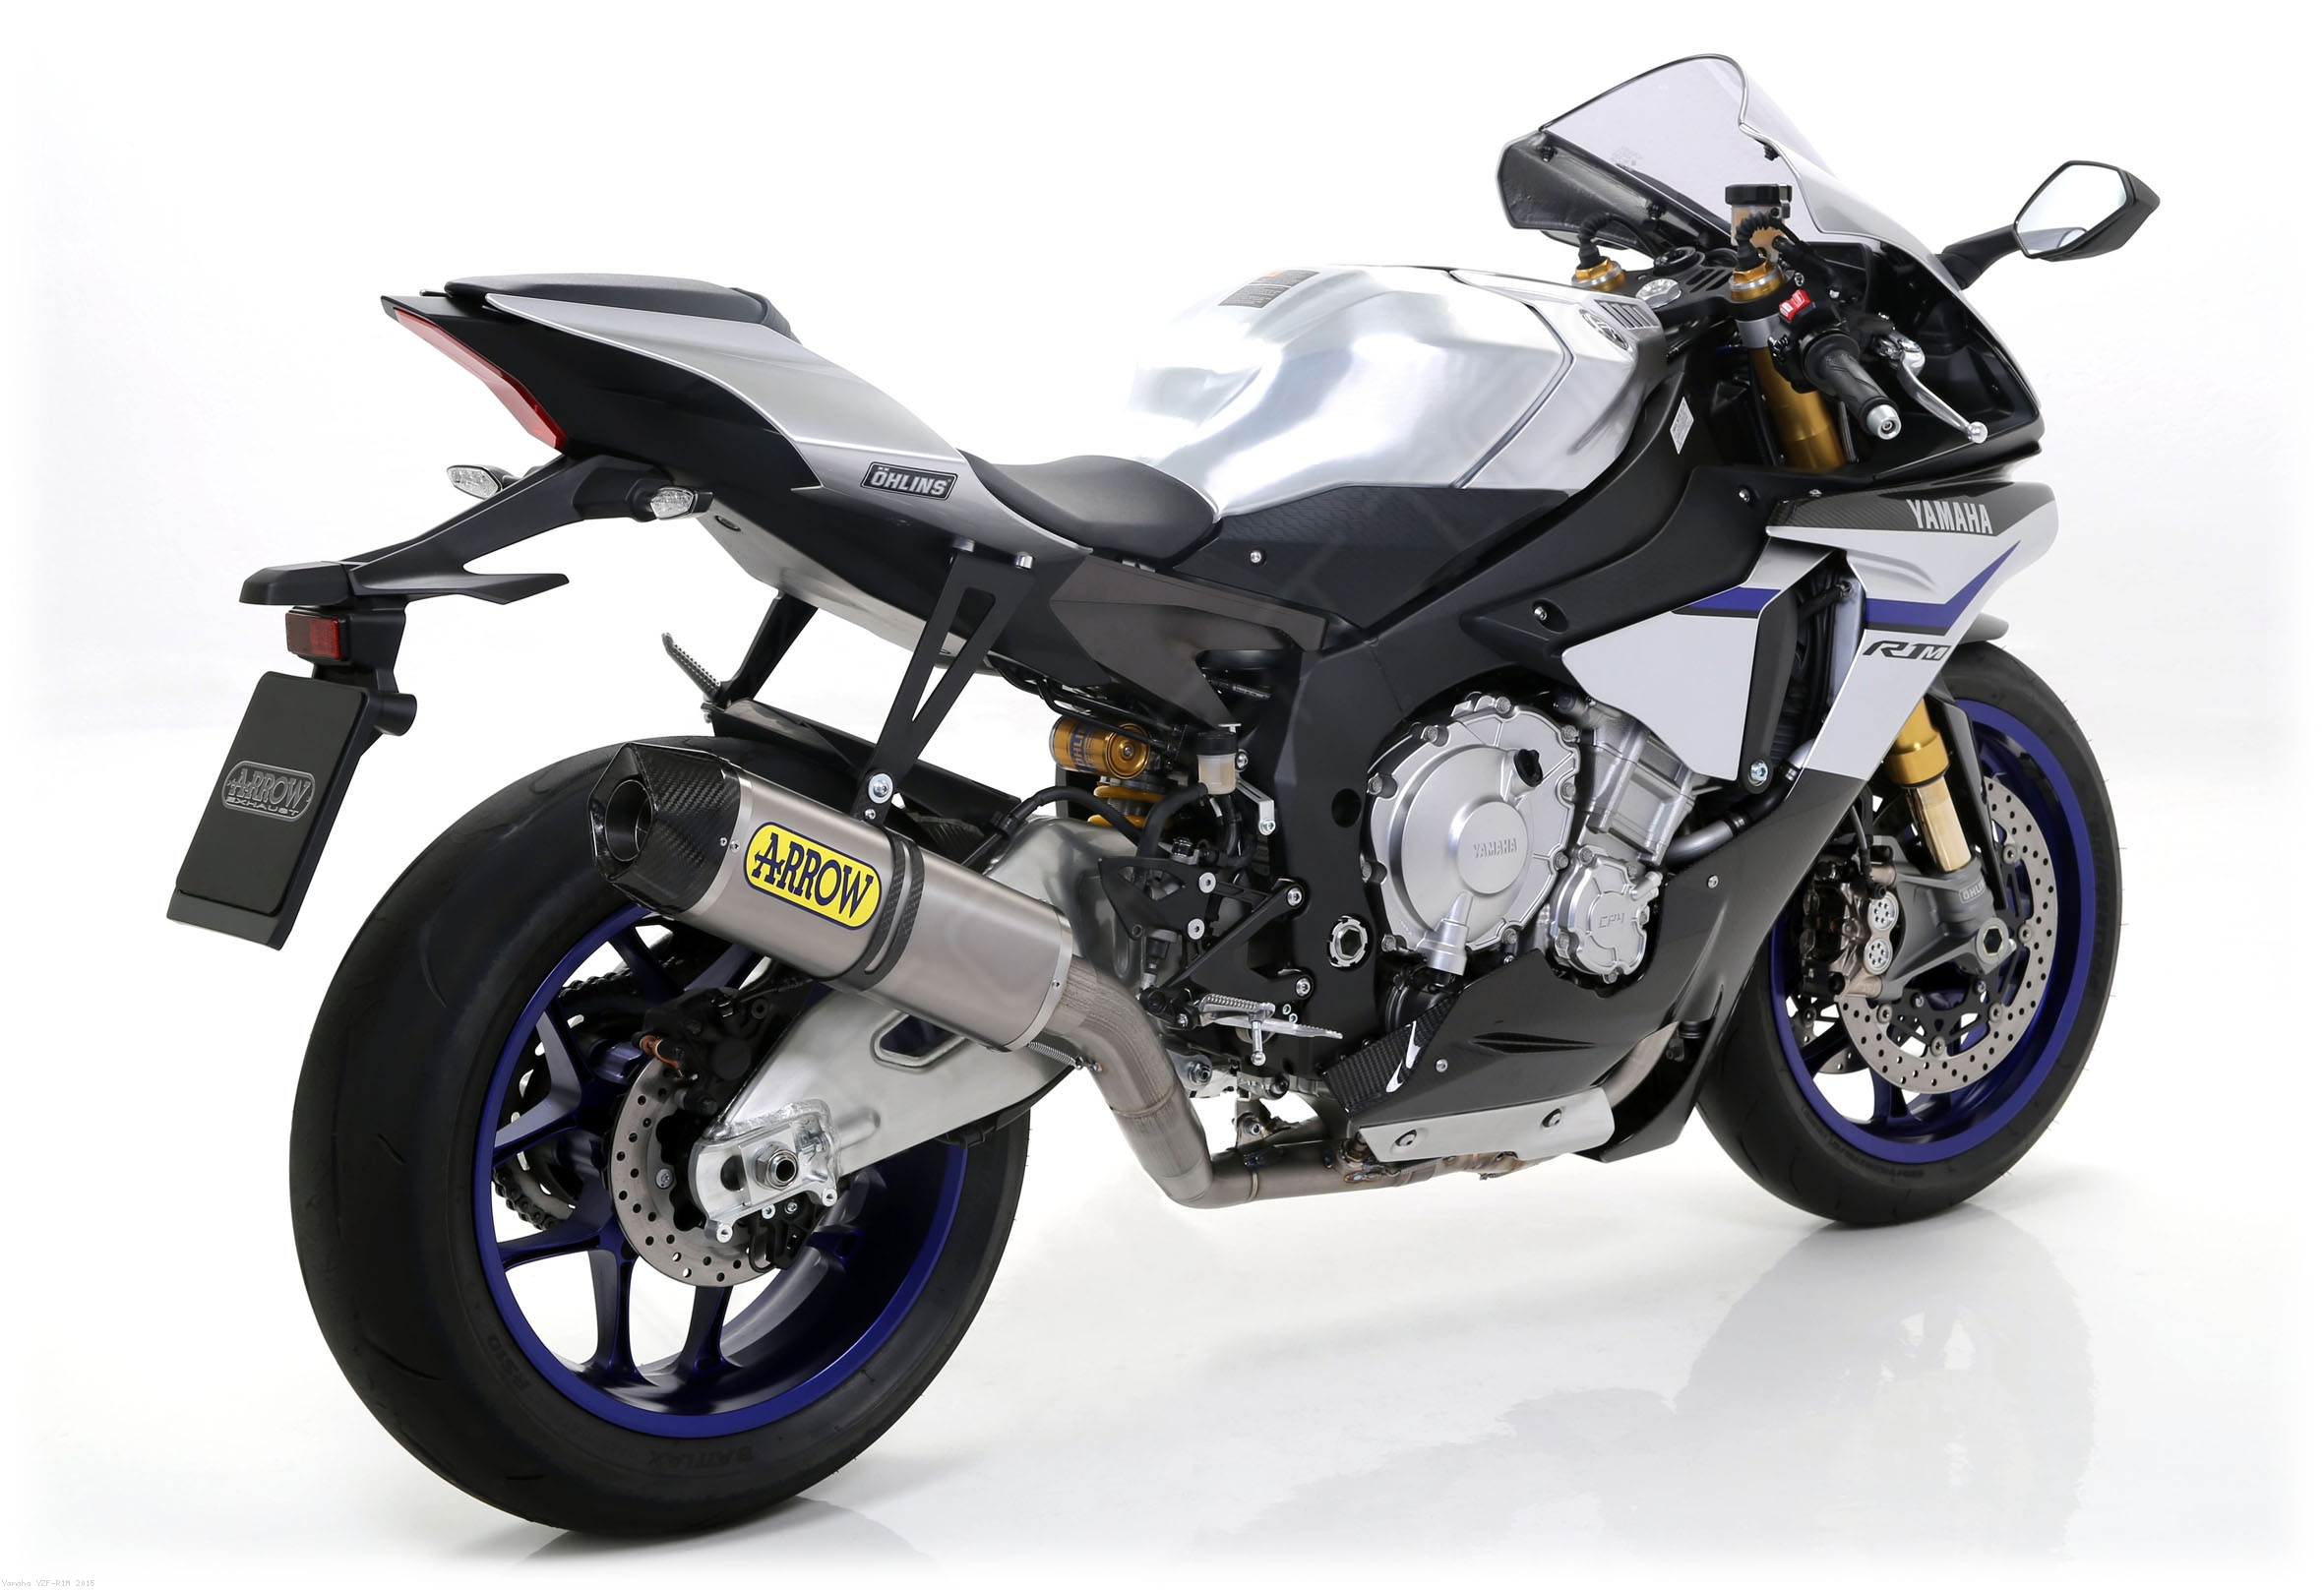 competition full indy race exhaust system by arrow yamaha yzf